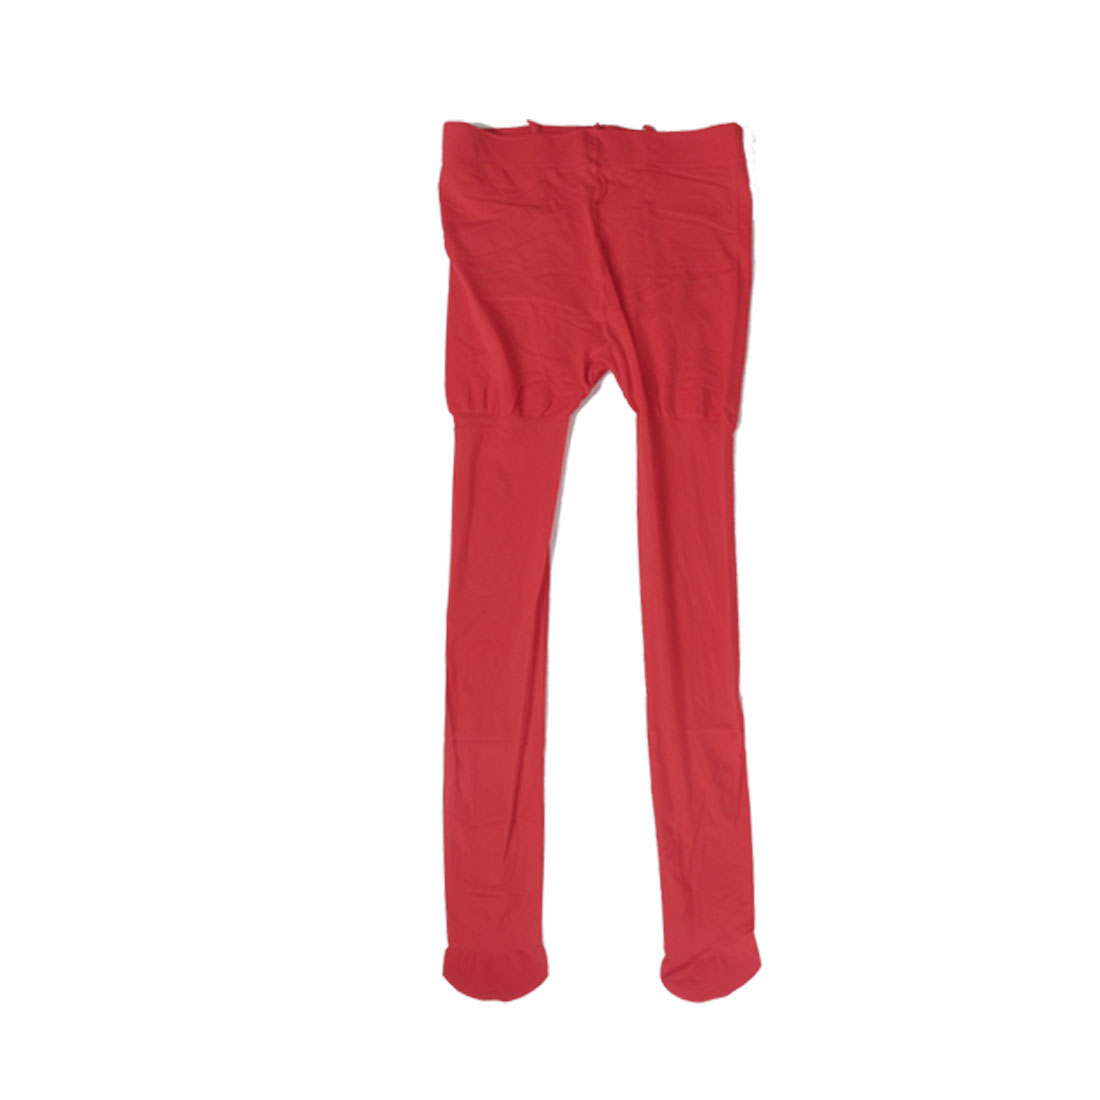 Women Sheer Footed Leggings Stretch Tights Red Thin Pantyhose XS